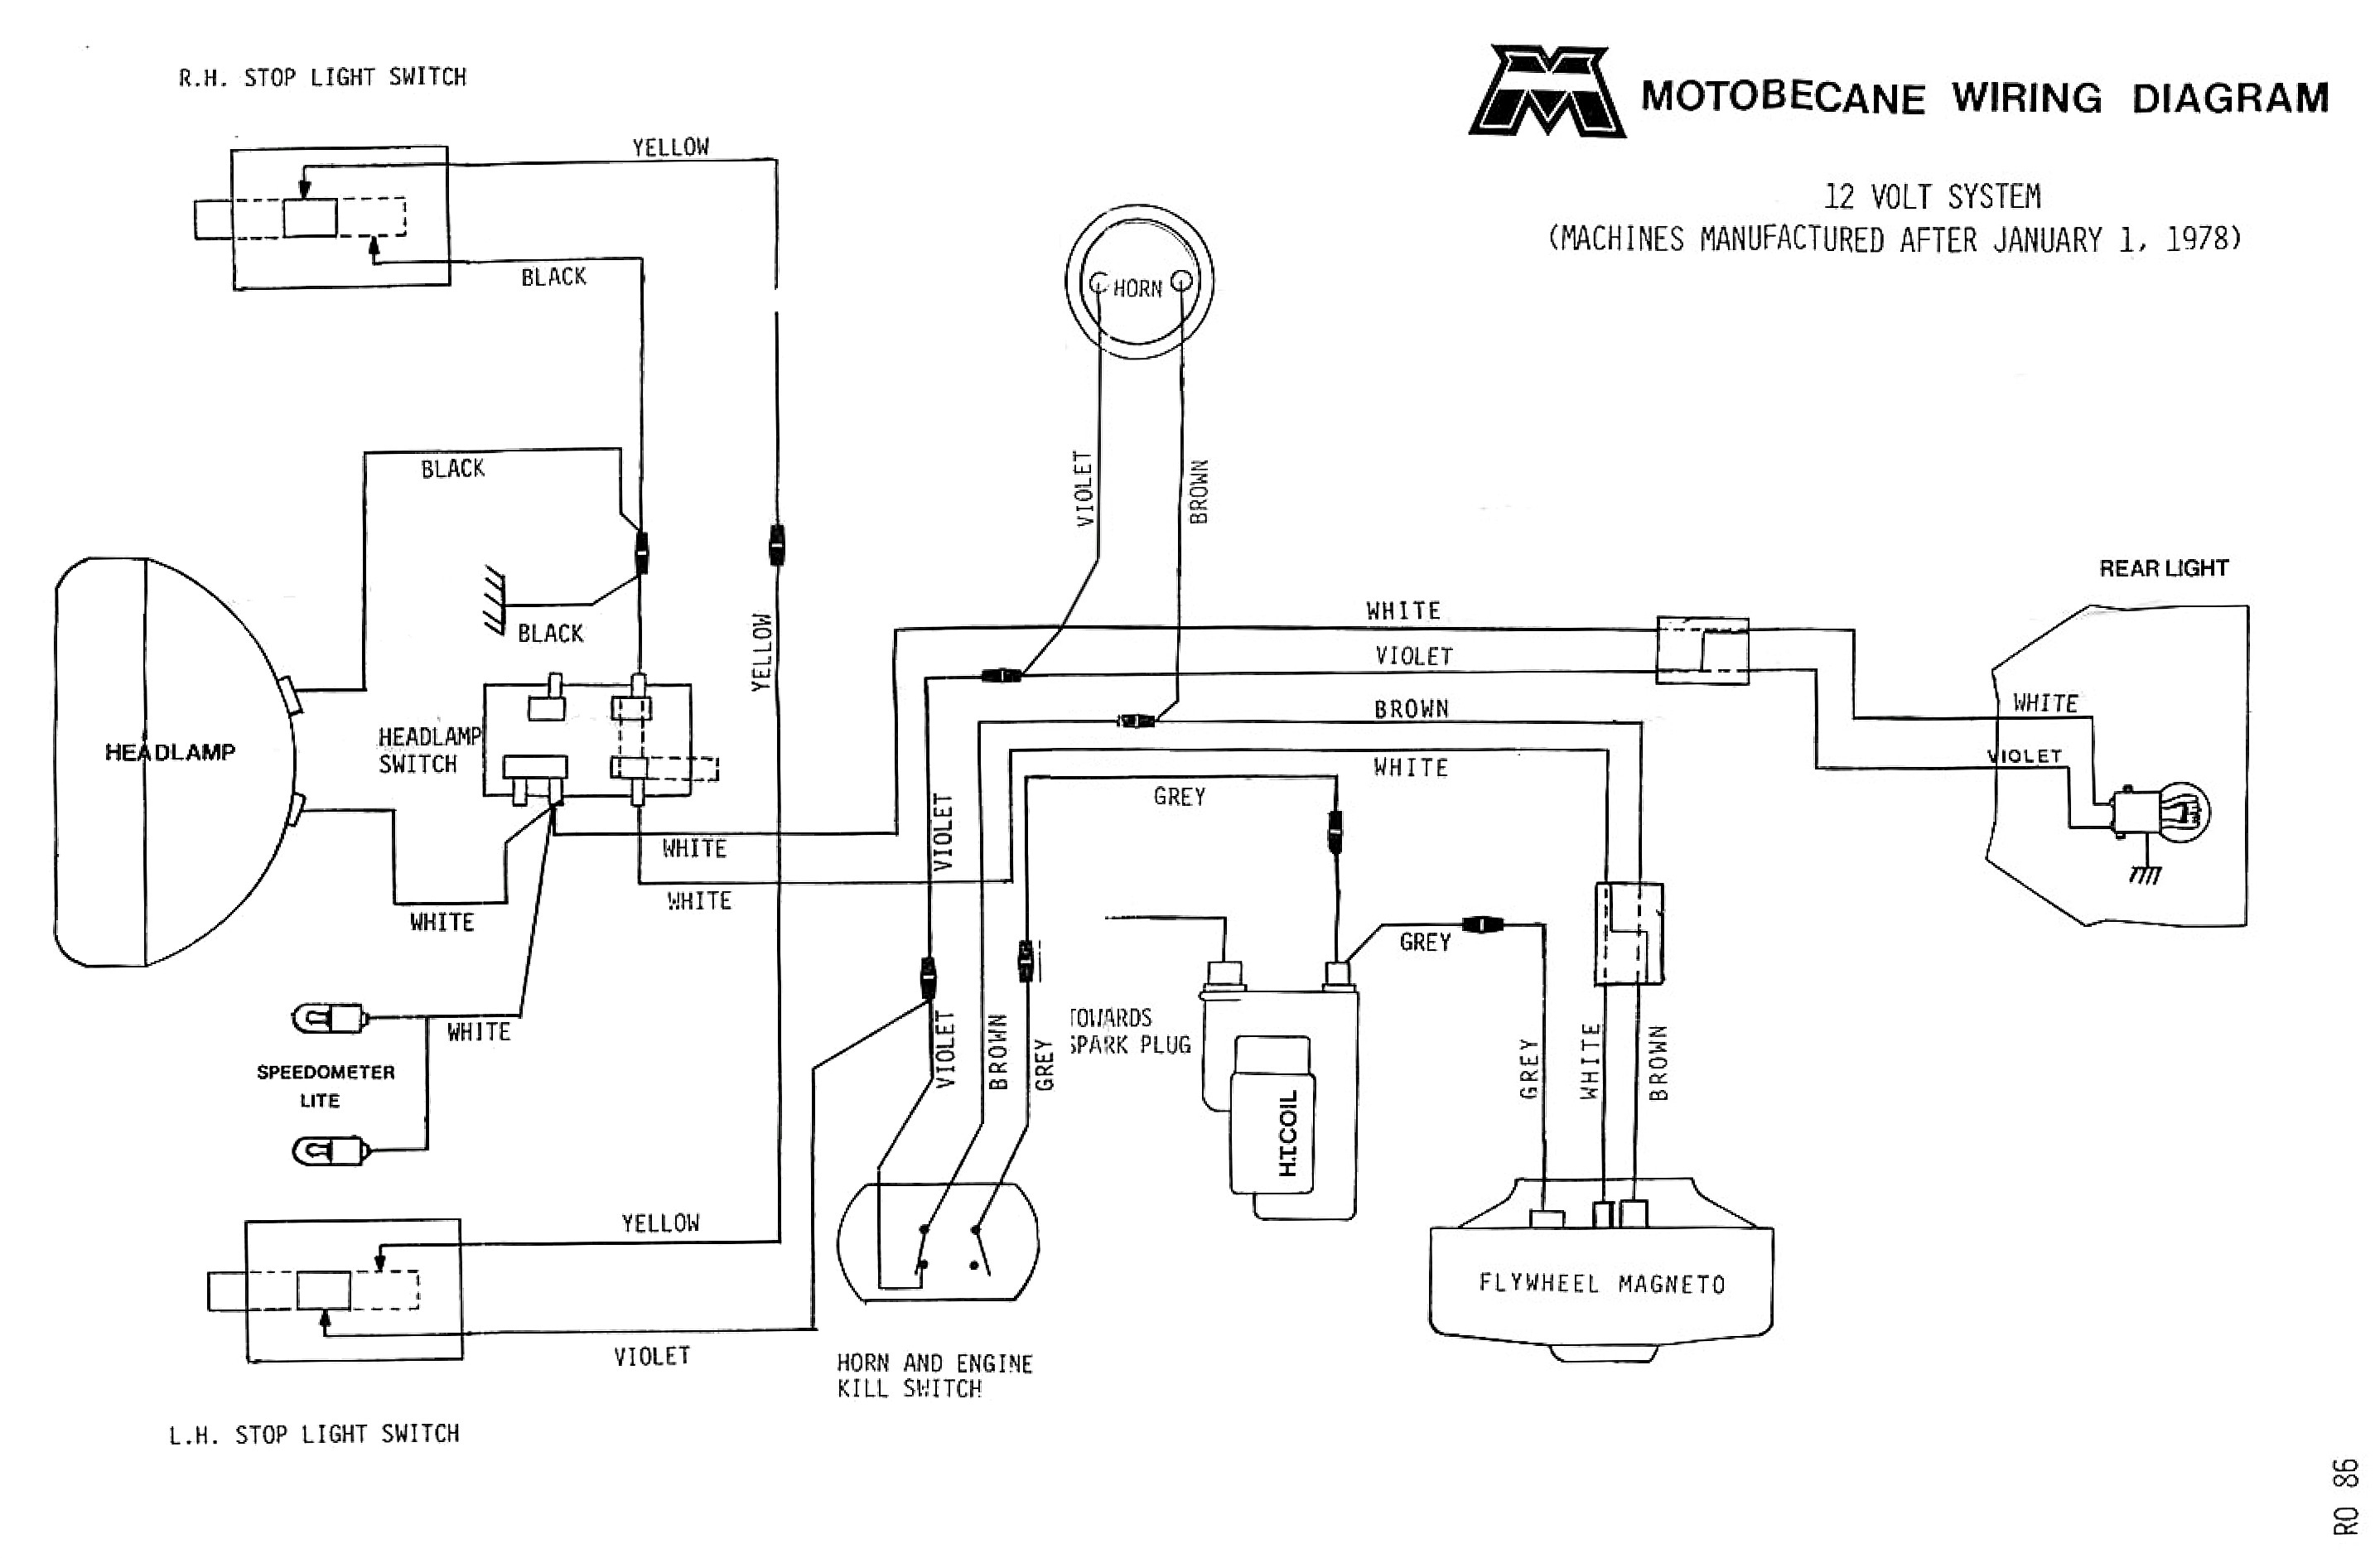 [GJFJ_338]  DIAGRAM] 1939 Farmall A Wiring Diagram FULL Version HD Quality Wiring  Diagram - M1911A1SCHEMATIC9793.CONCESSIONARIABELOGISENIGALLIA.IT | Ih 560 Wiring Diagram |  | concessionariabelogisenigallia.it